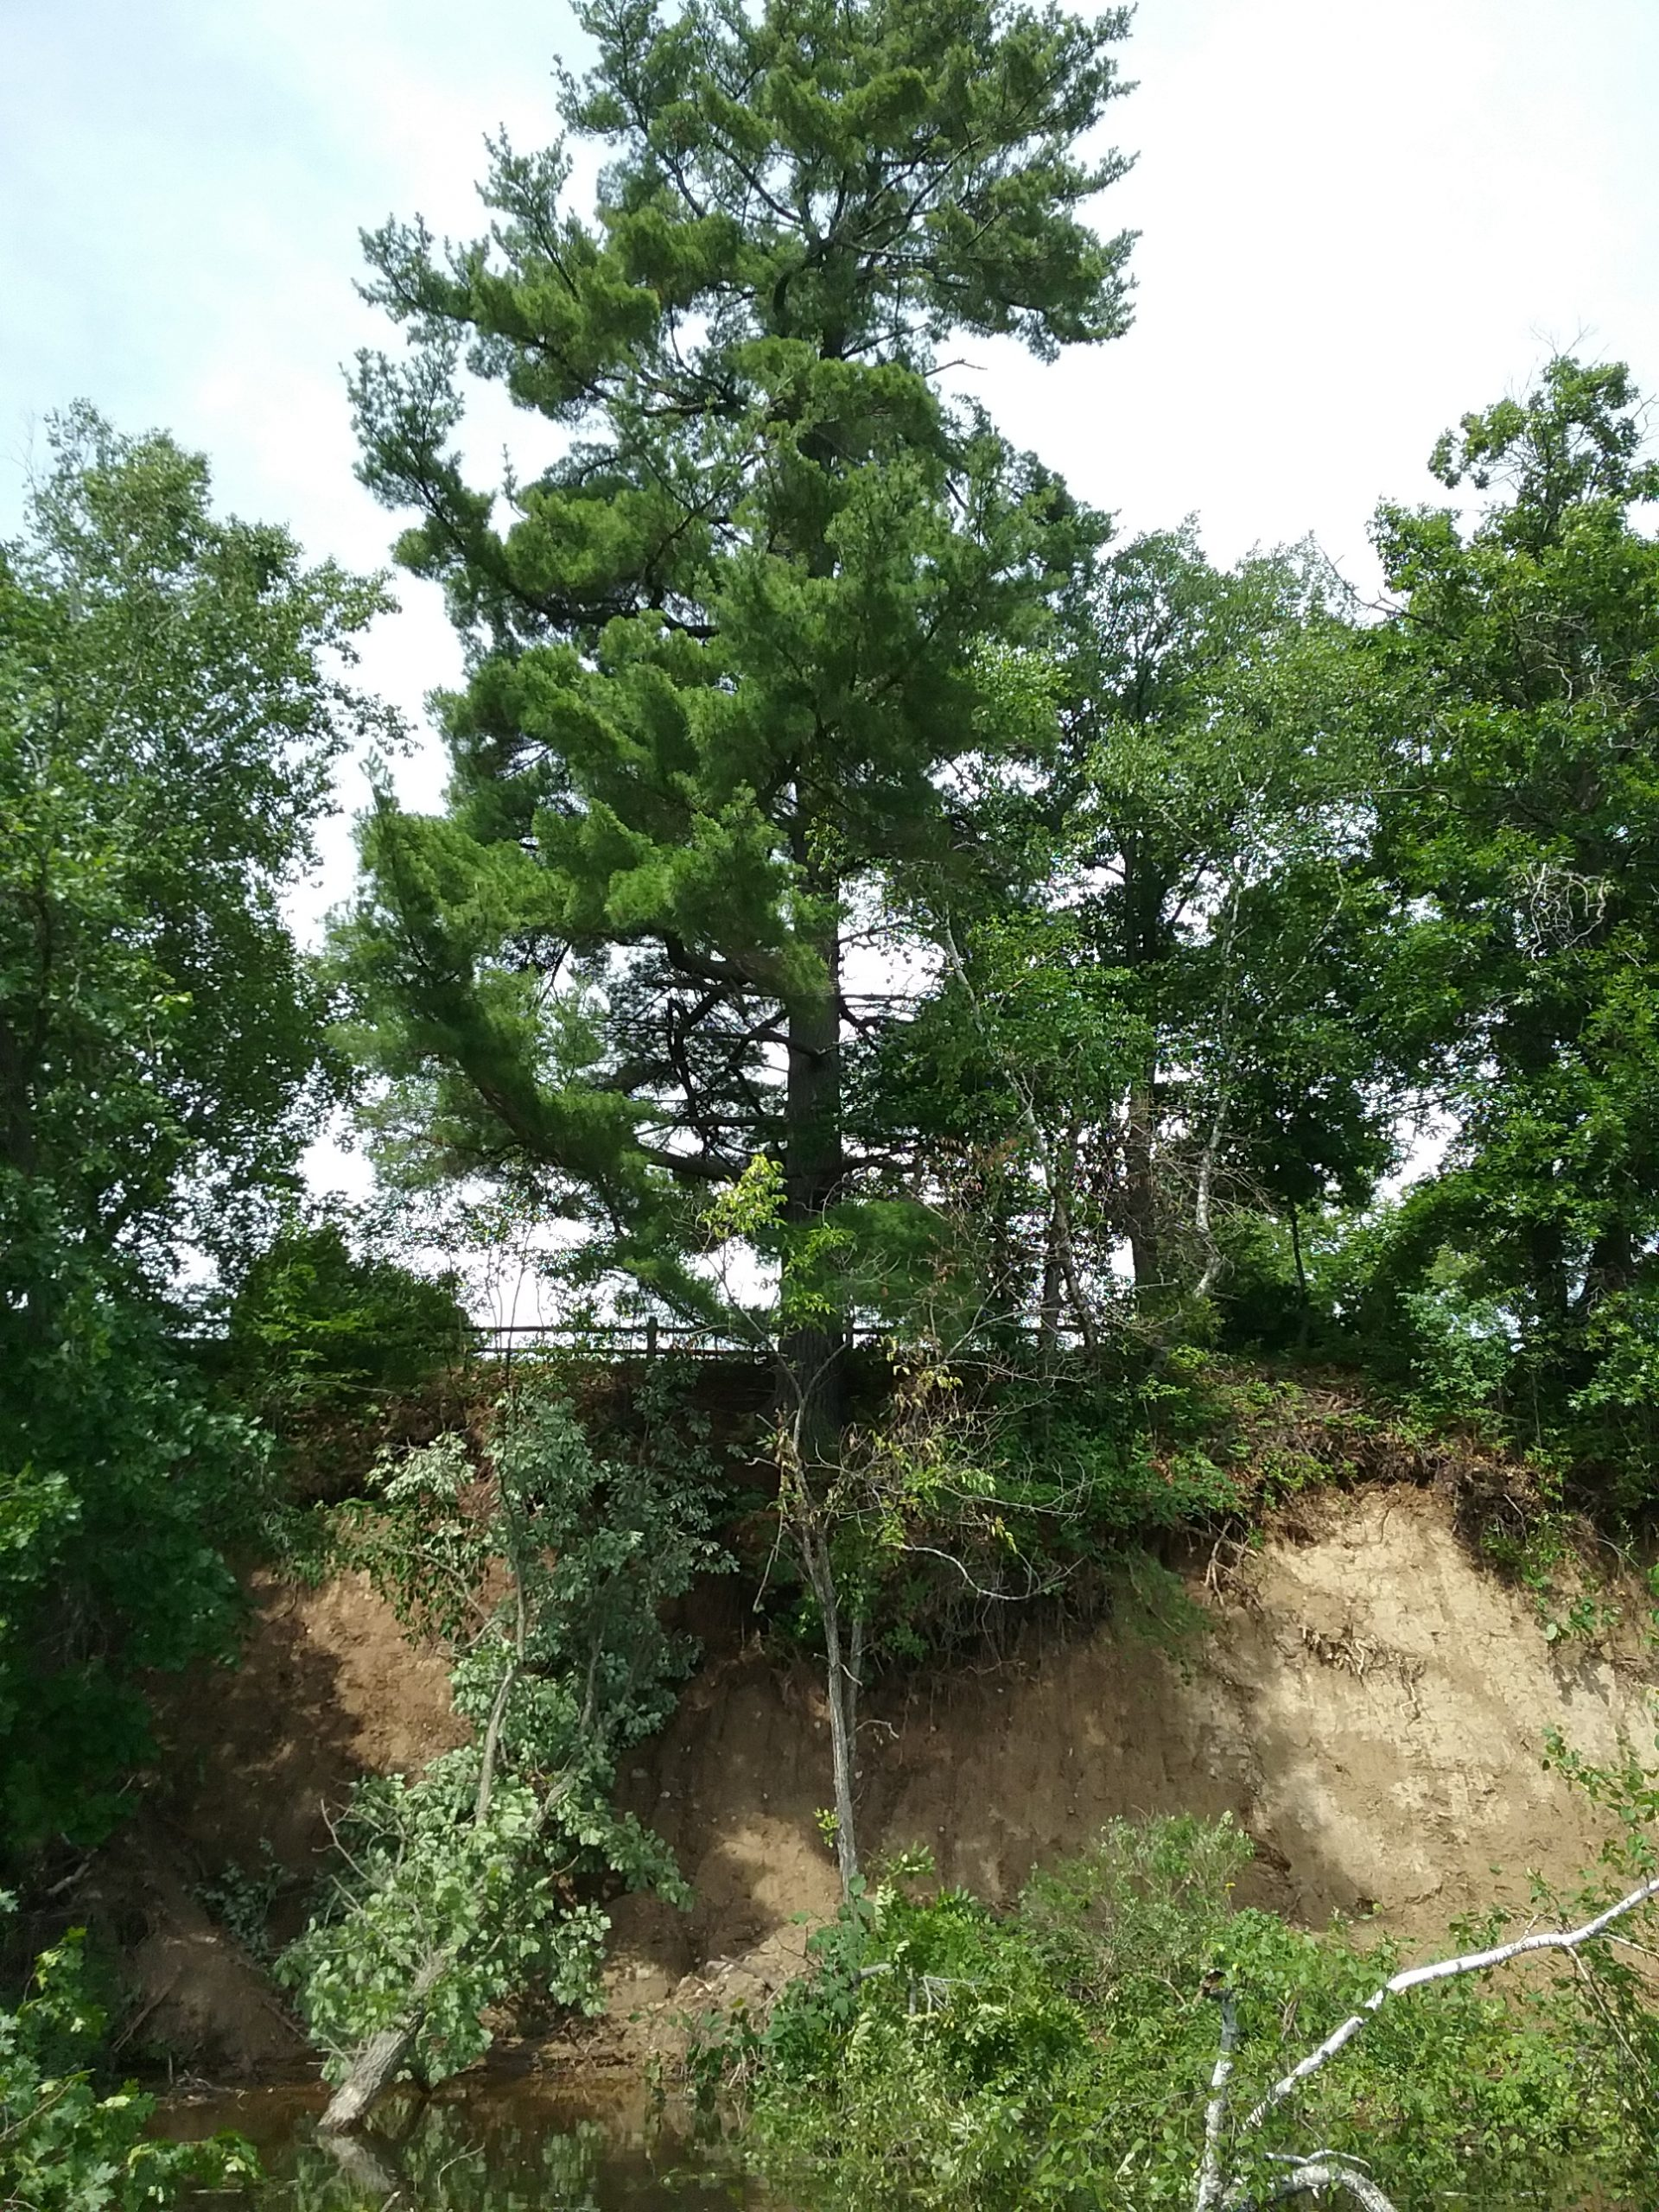 This shows the washout under the Big Pine. Note the fence behind the Big Pine and how much of the pine's roots are exposed, as well as the trees that are in the water. Taken July 3, 2020.